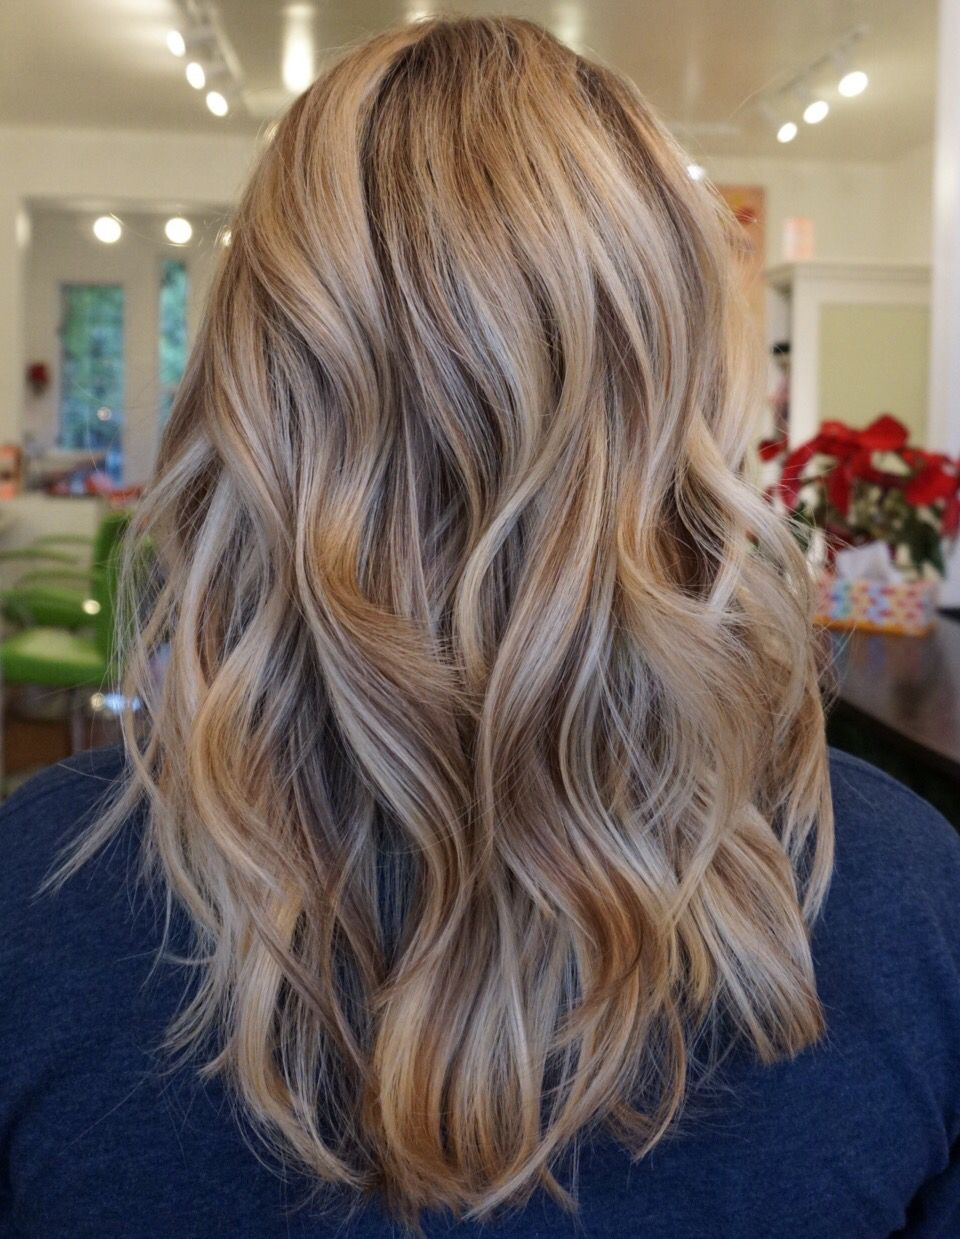 All balayage highlights by holly at blueprint modern hair in